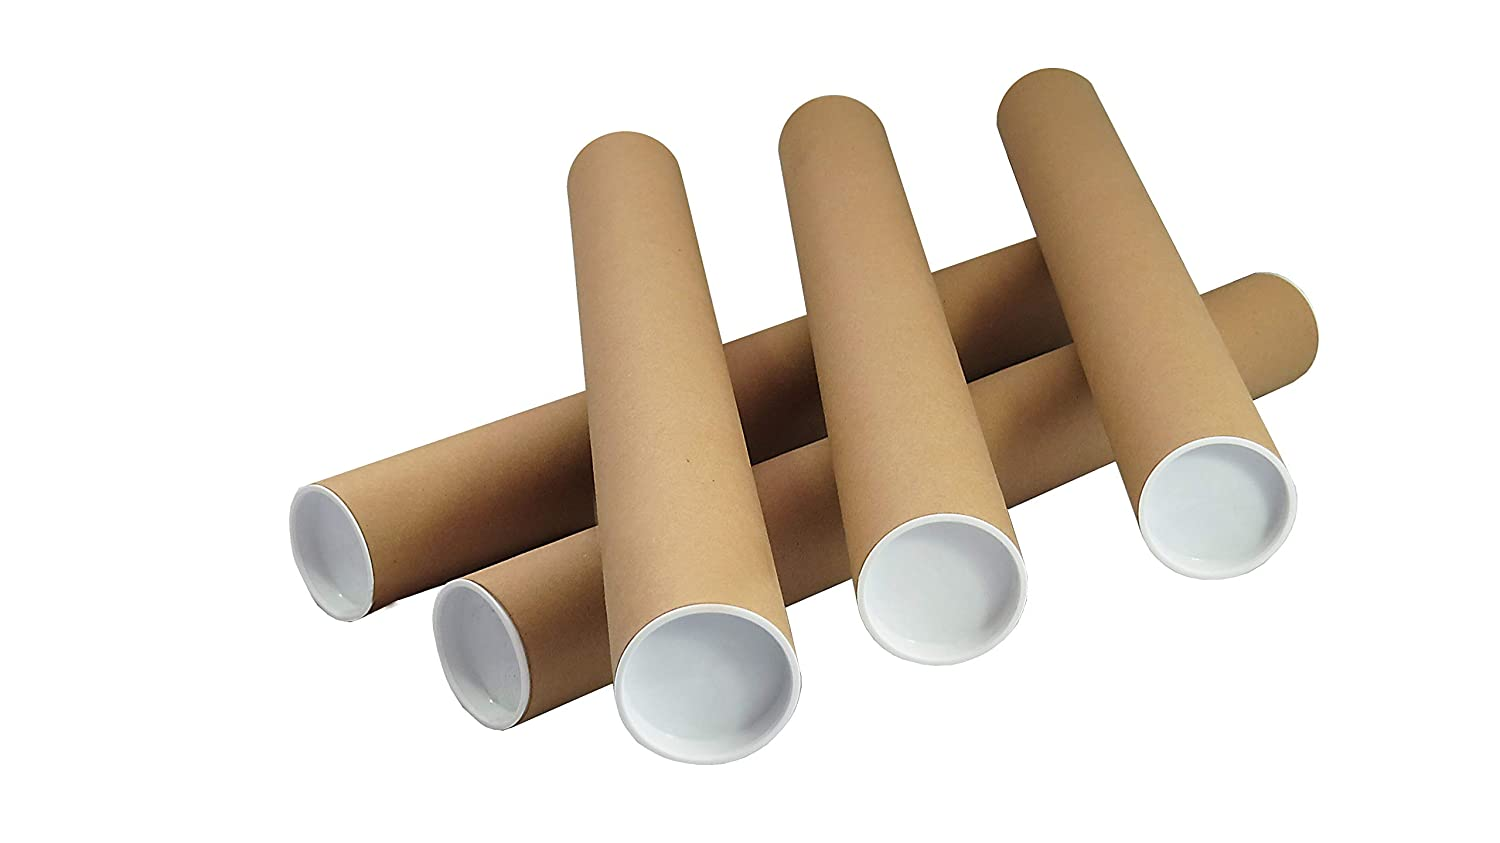 10 x A2 Quality Postal Tubes Poster 460mm x 50mm Rolls + END CAPS Globe Packaging